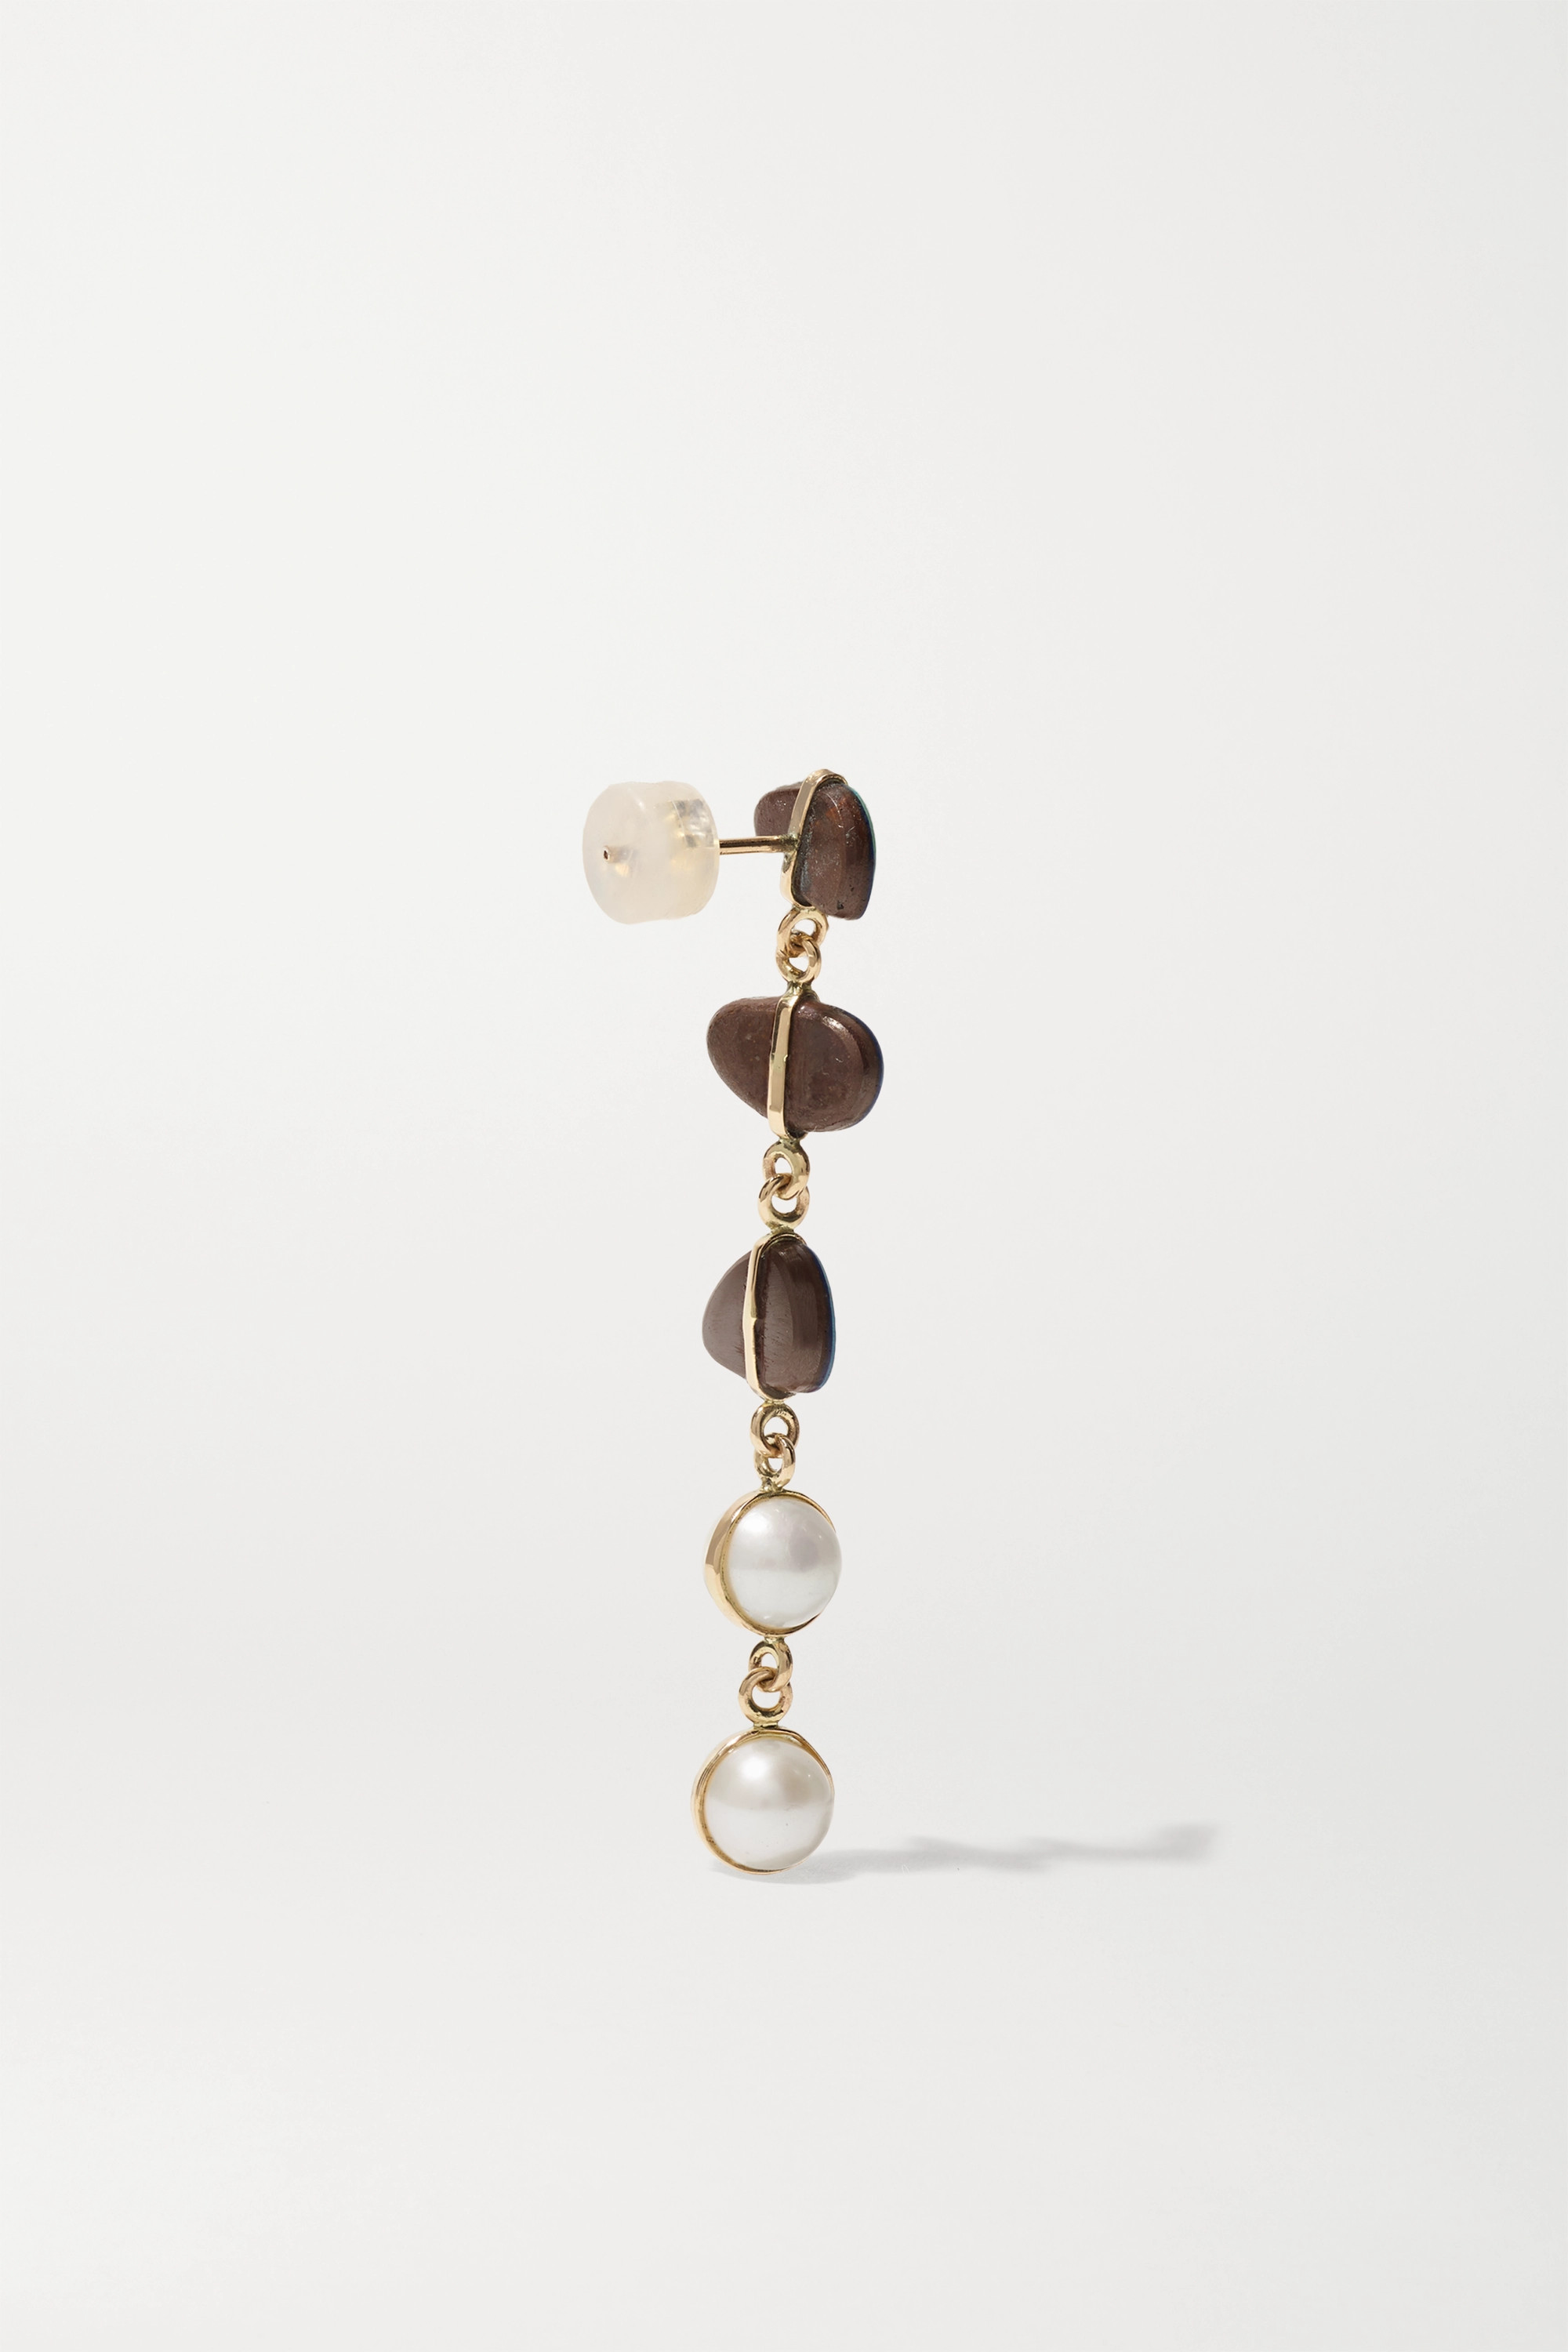 Melissa Joy Manning Levity 14-karat recycled gold, pearl and opal earrings